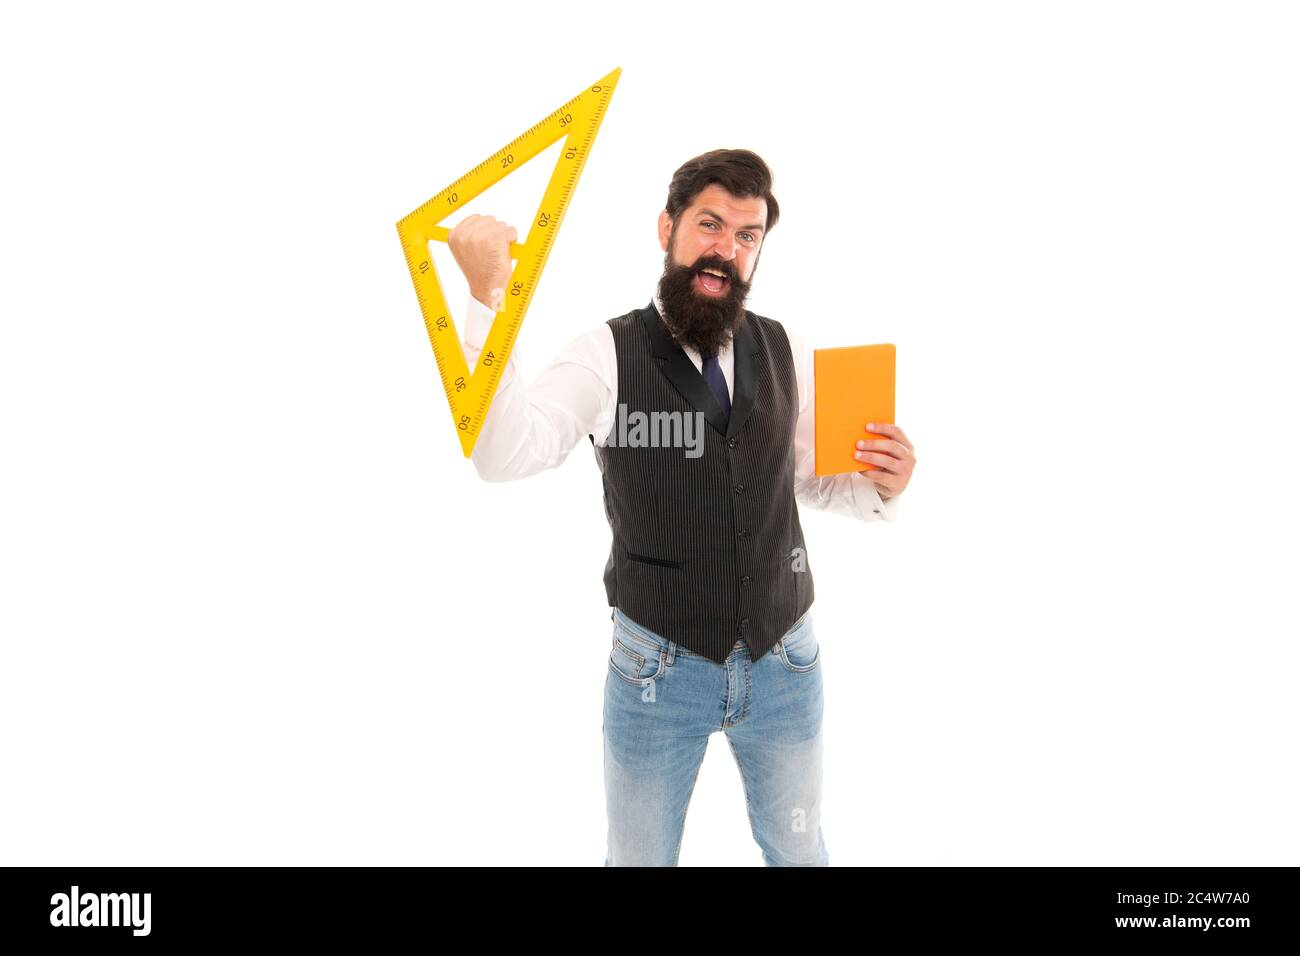 Engineering Is Science To Solve Problems Excited Hipster Hold Triangle And Book Isolated On White Teaching Engineering Discipline Engineering Drawings Applied Mathematics Engineering And Design Stock Photo Alamy